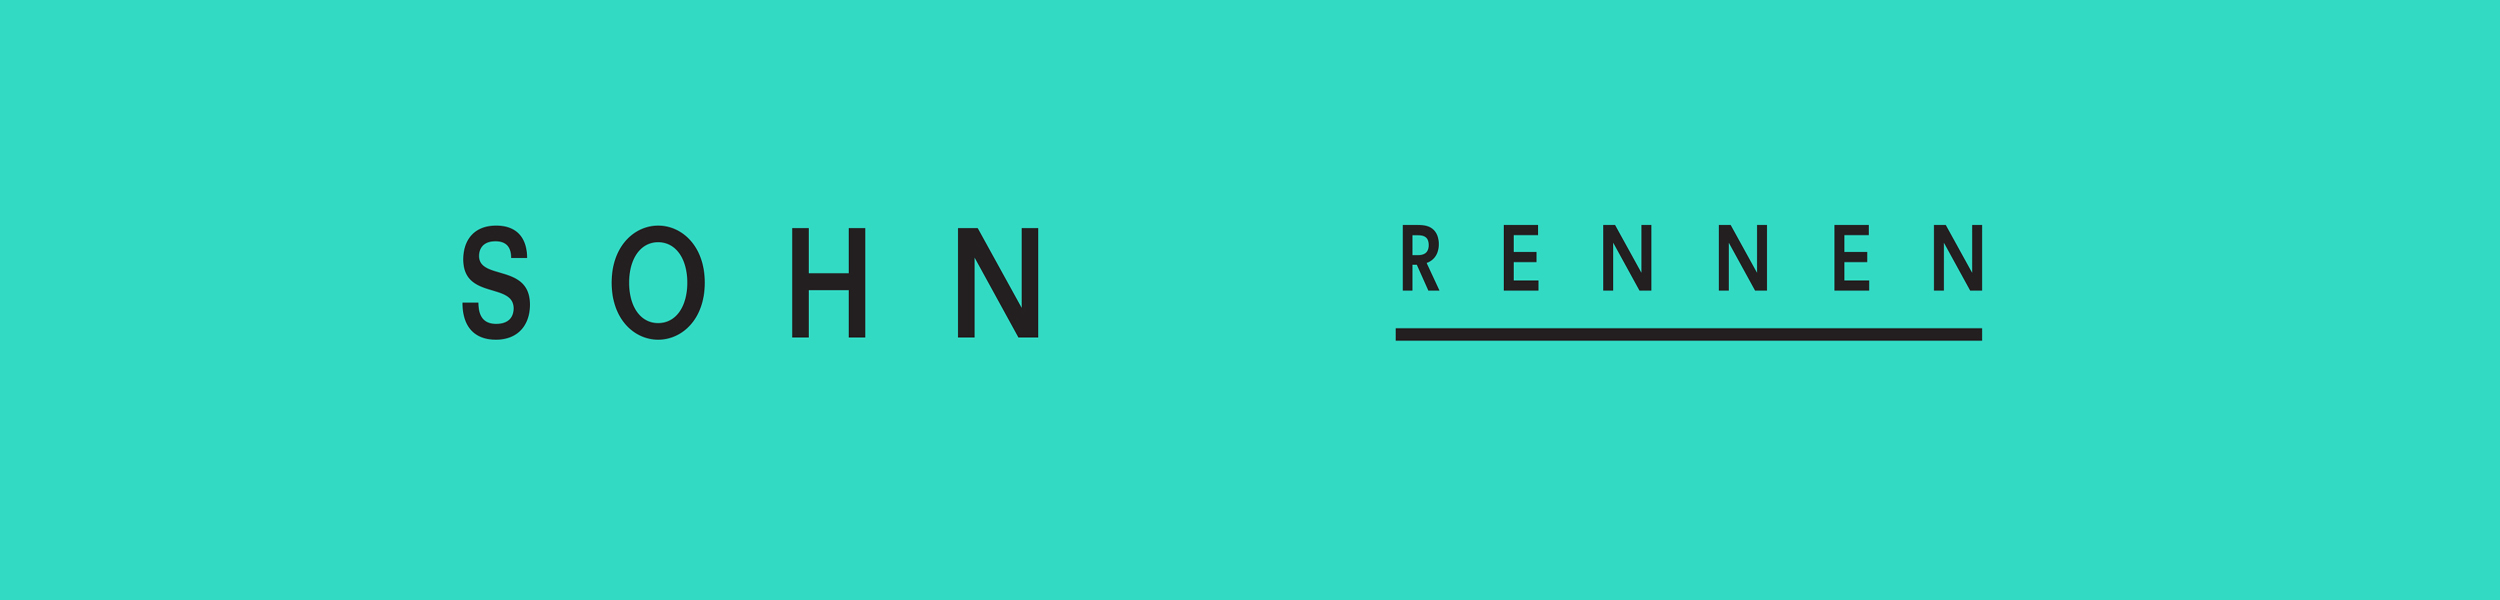 SOHN - New Single 'Rennen' Streaming Now